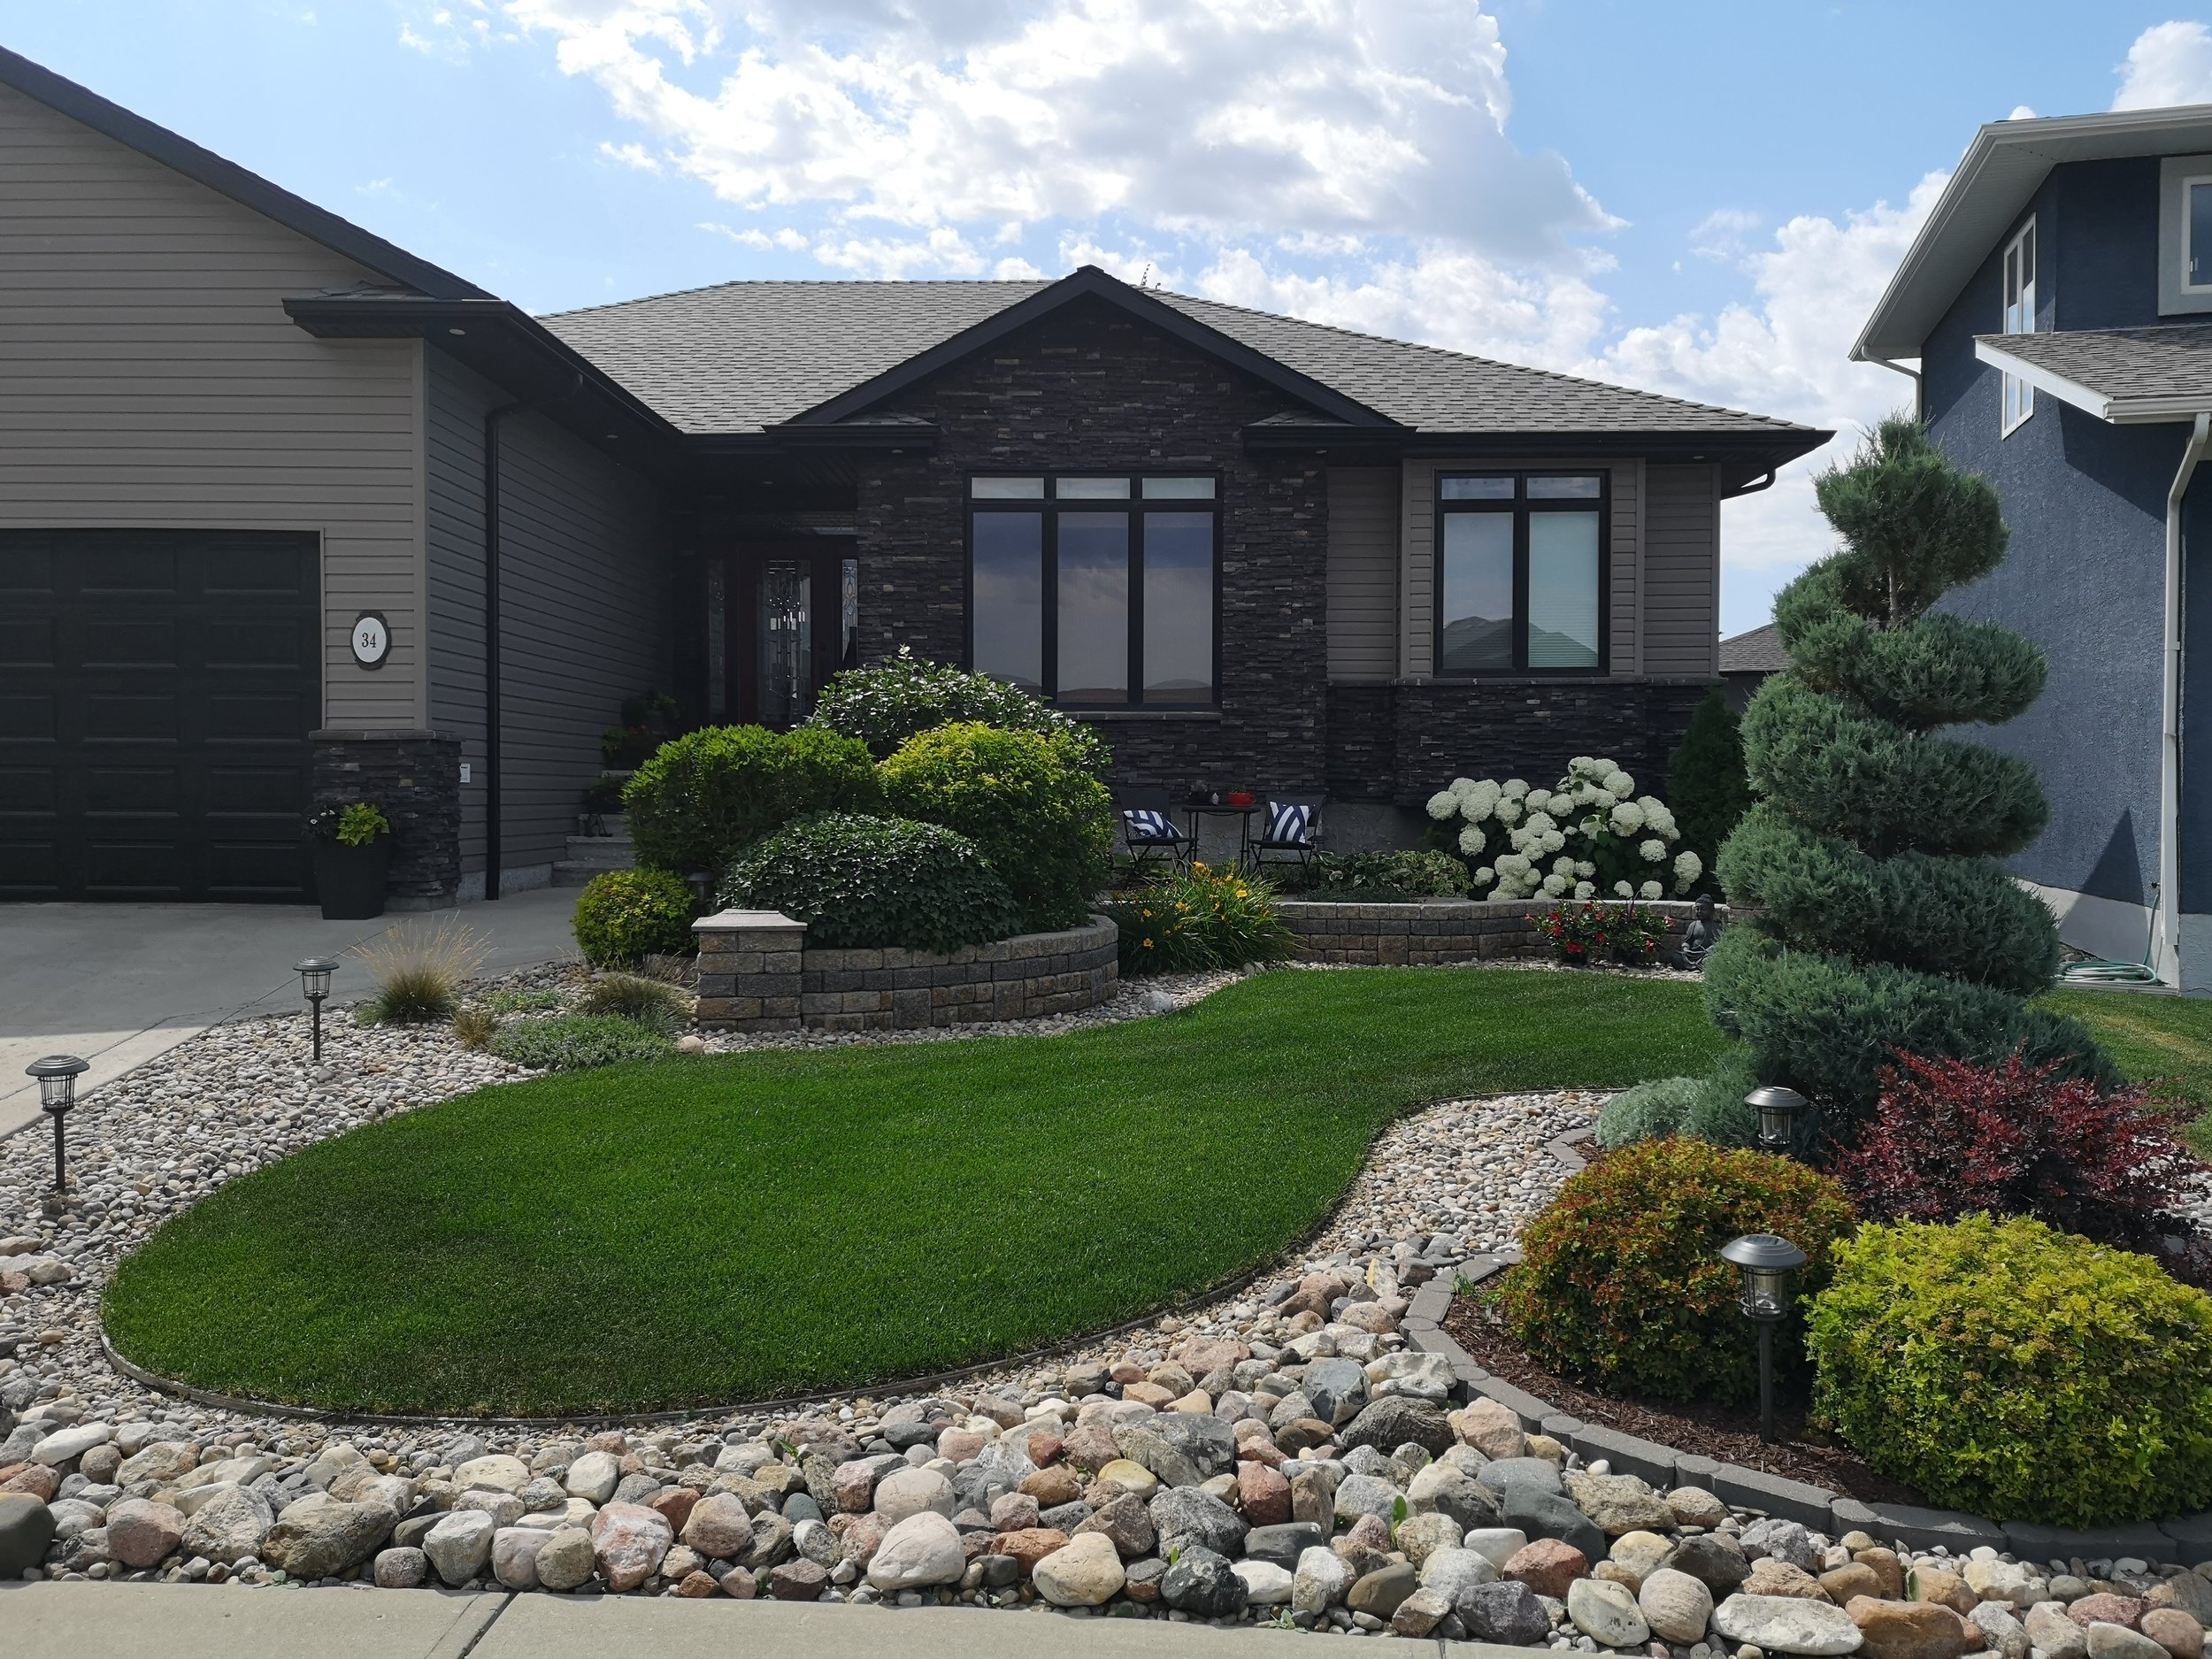 Kari Nelson and Ryan Hoover's home was tied for top honours